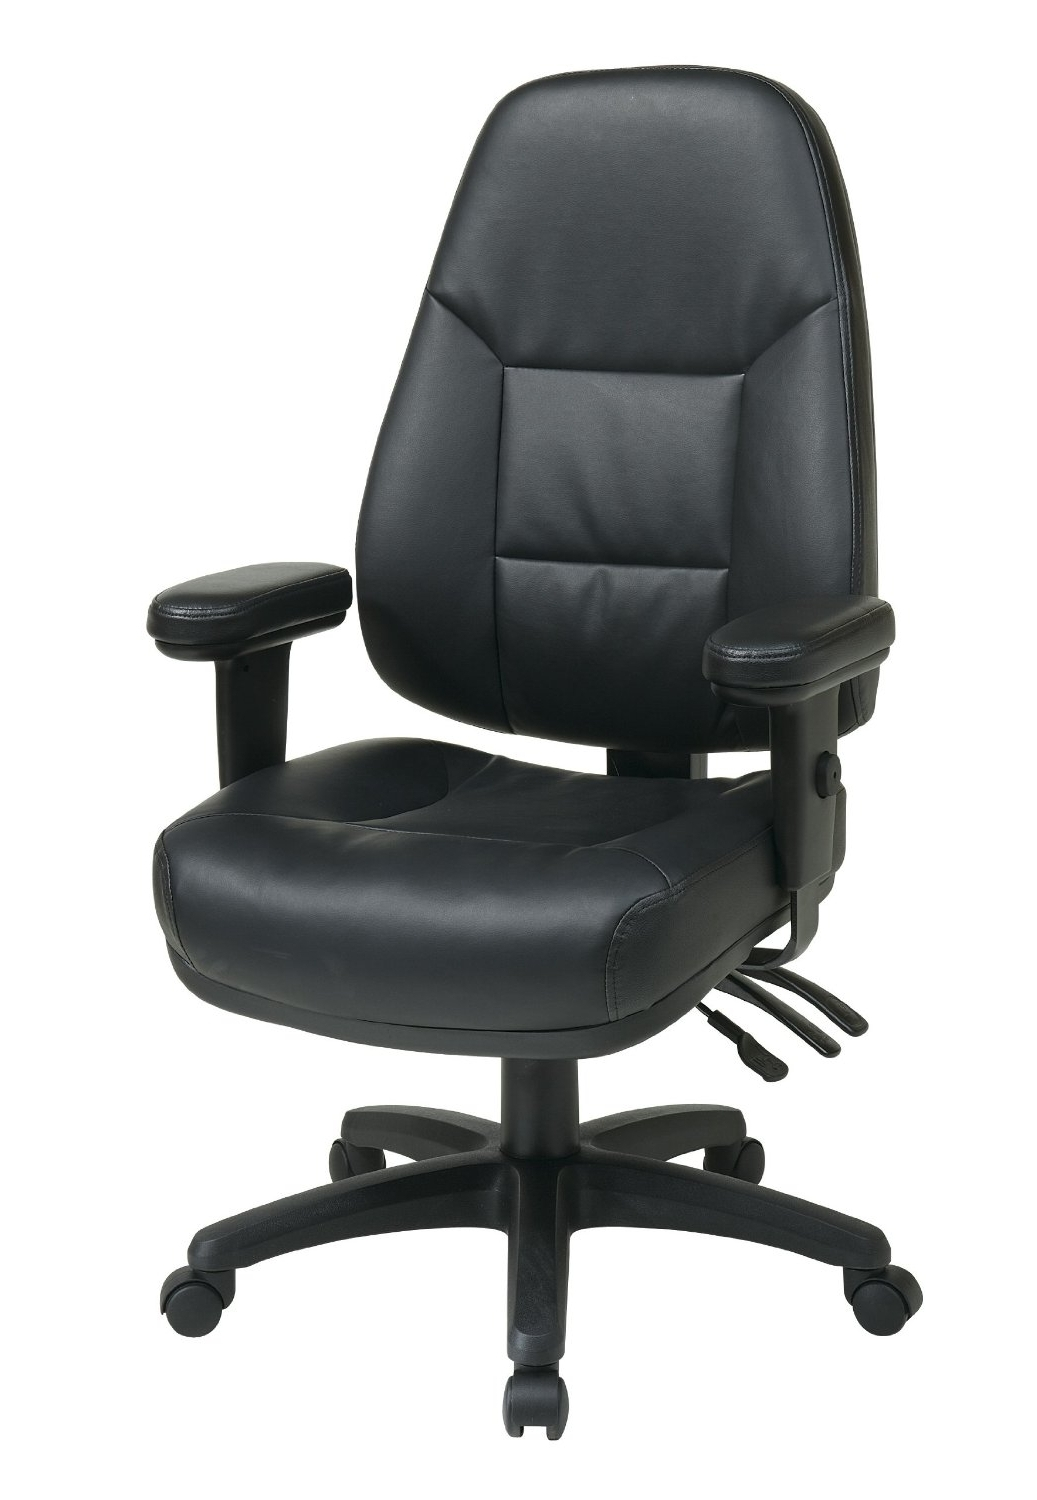 Xl Executive Office Chairs In Well Known Xl Executive Office Chairs • Office Chairs (Gallery 1 of 20)